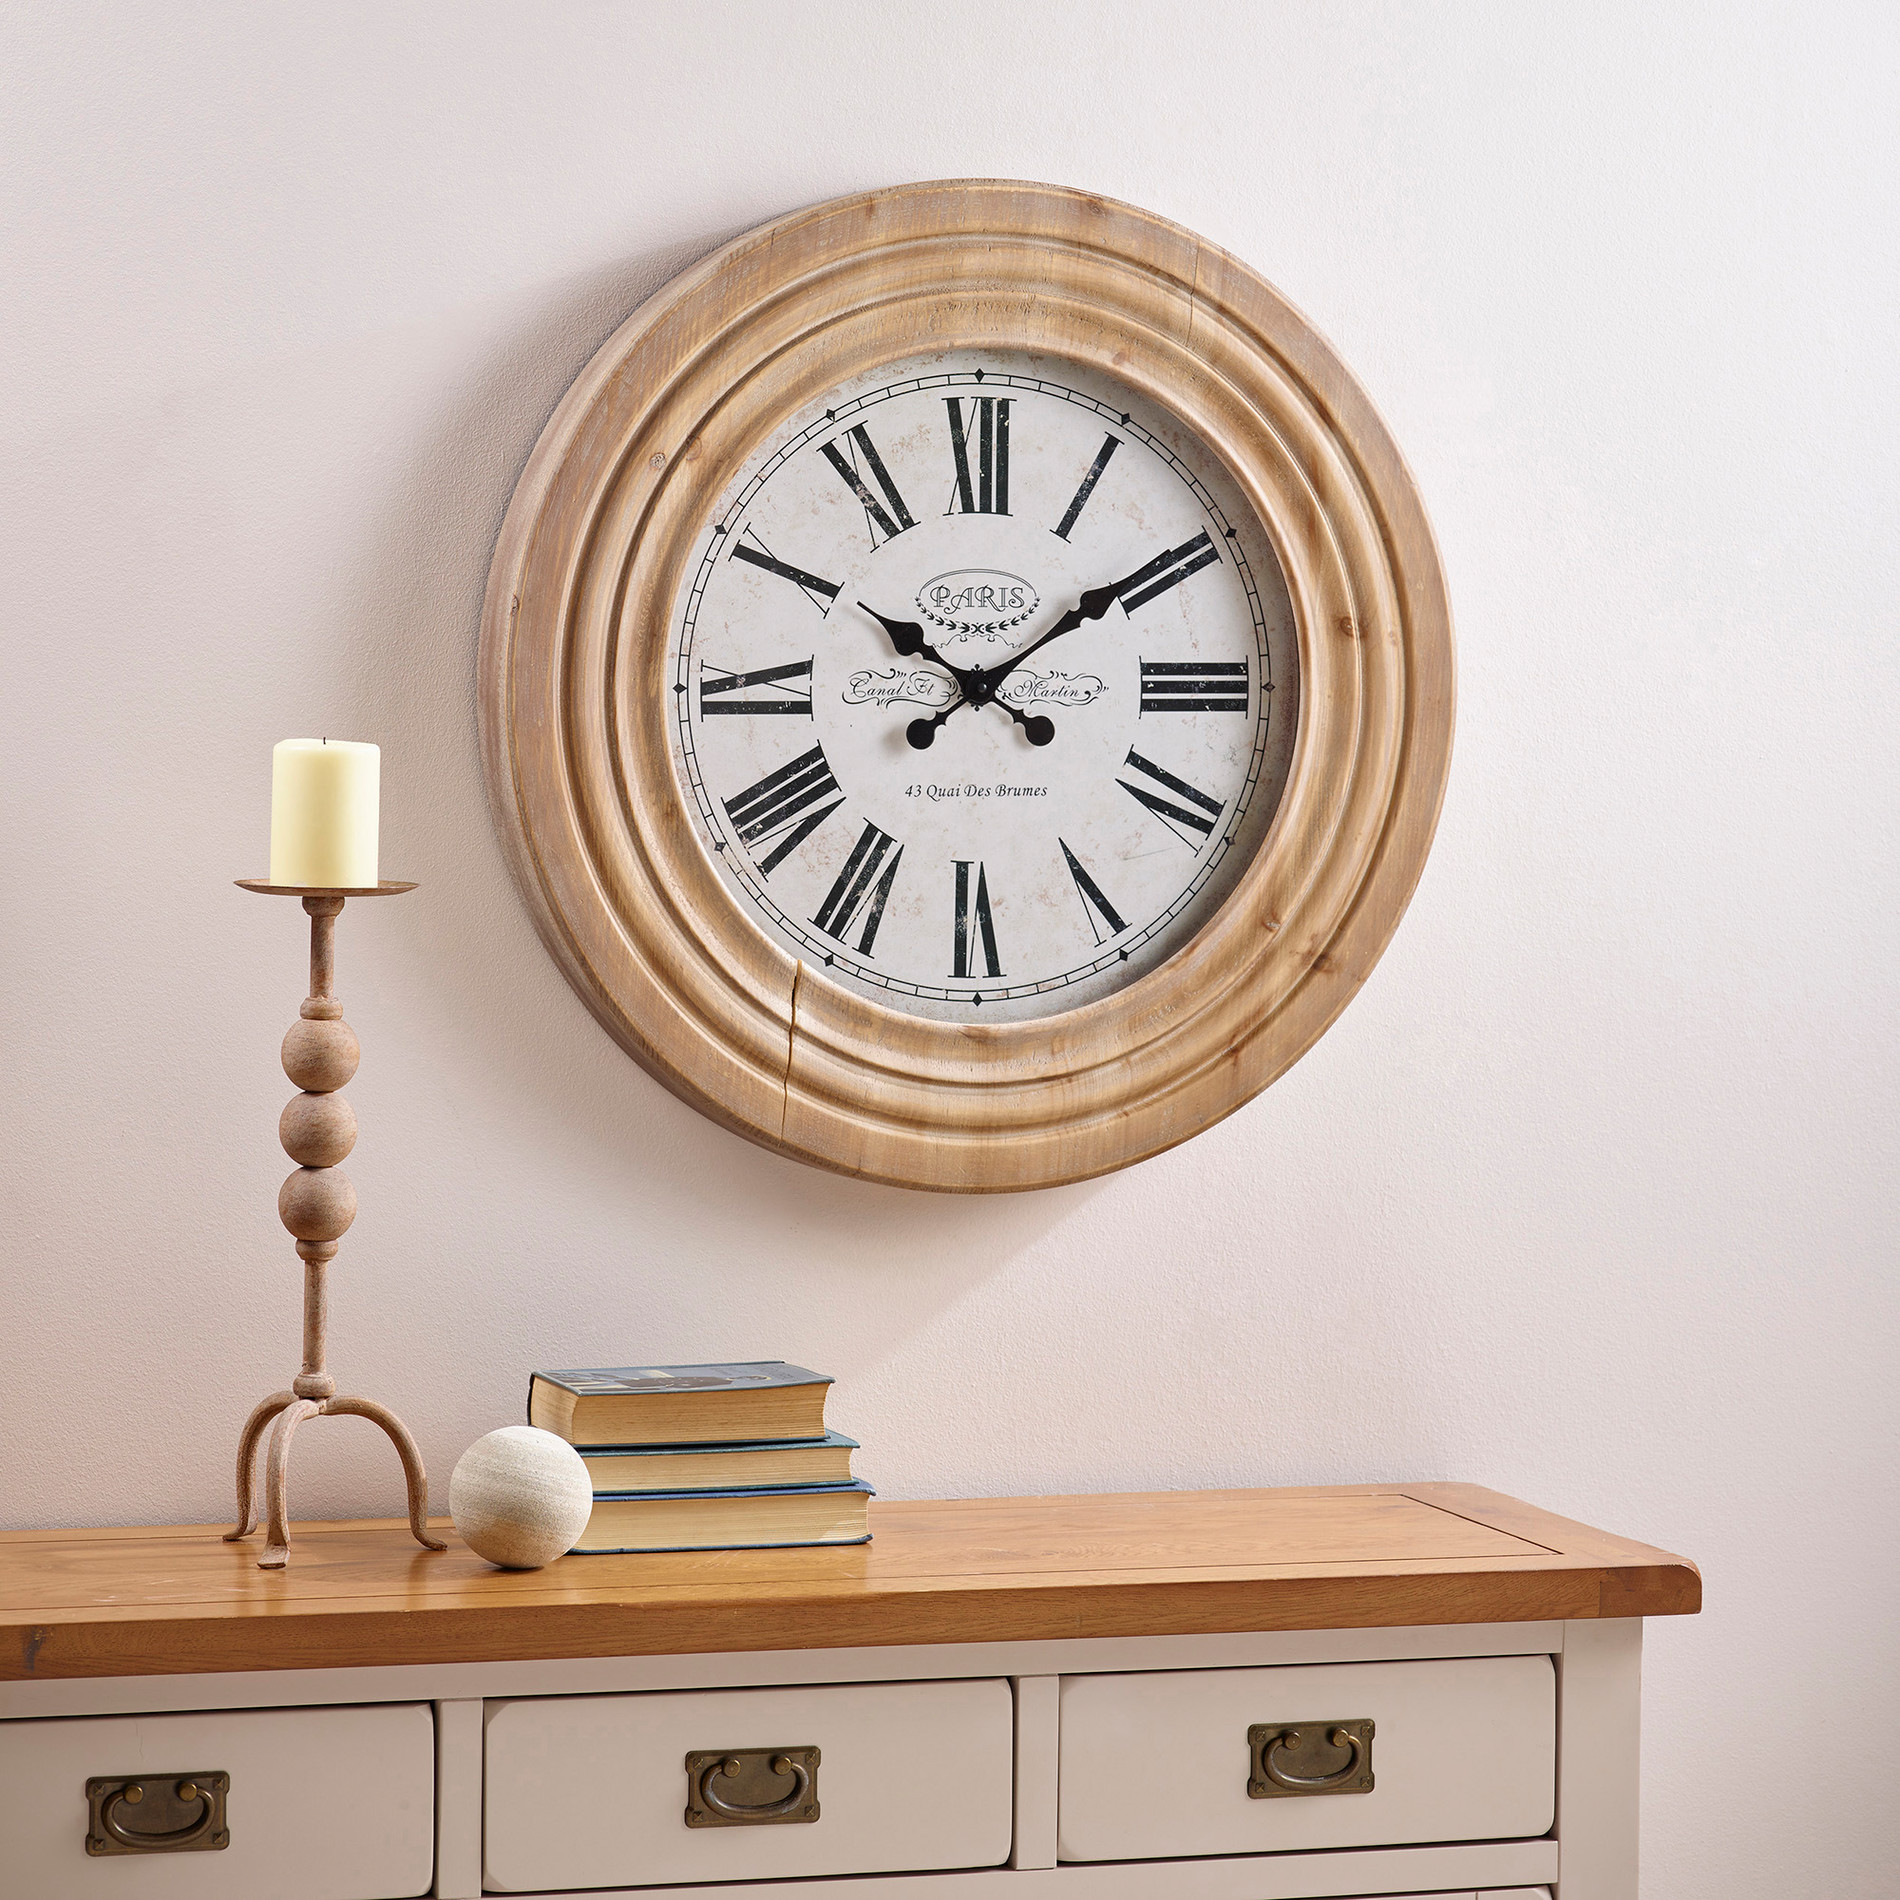 Clocks spend over 1500 and get one free oak furniture land express delivery paris wall clock amipublicfo Gallery